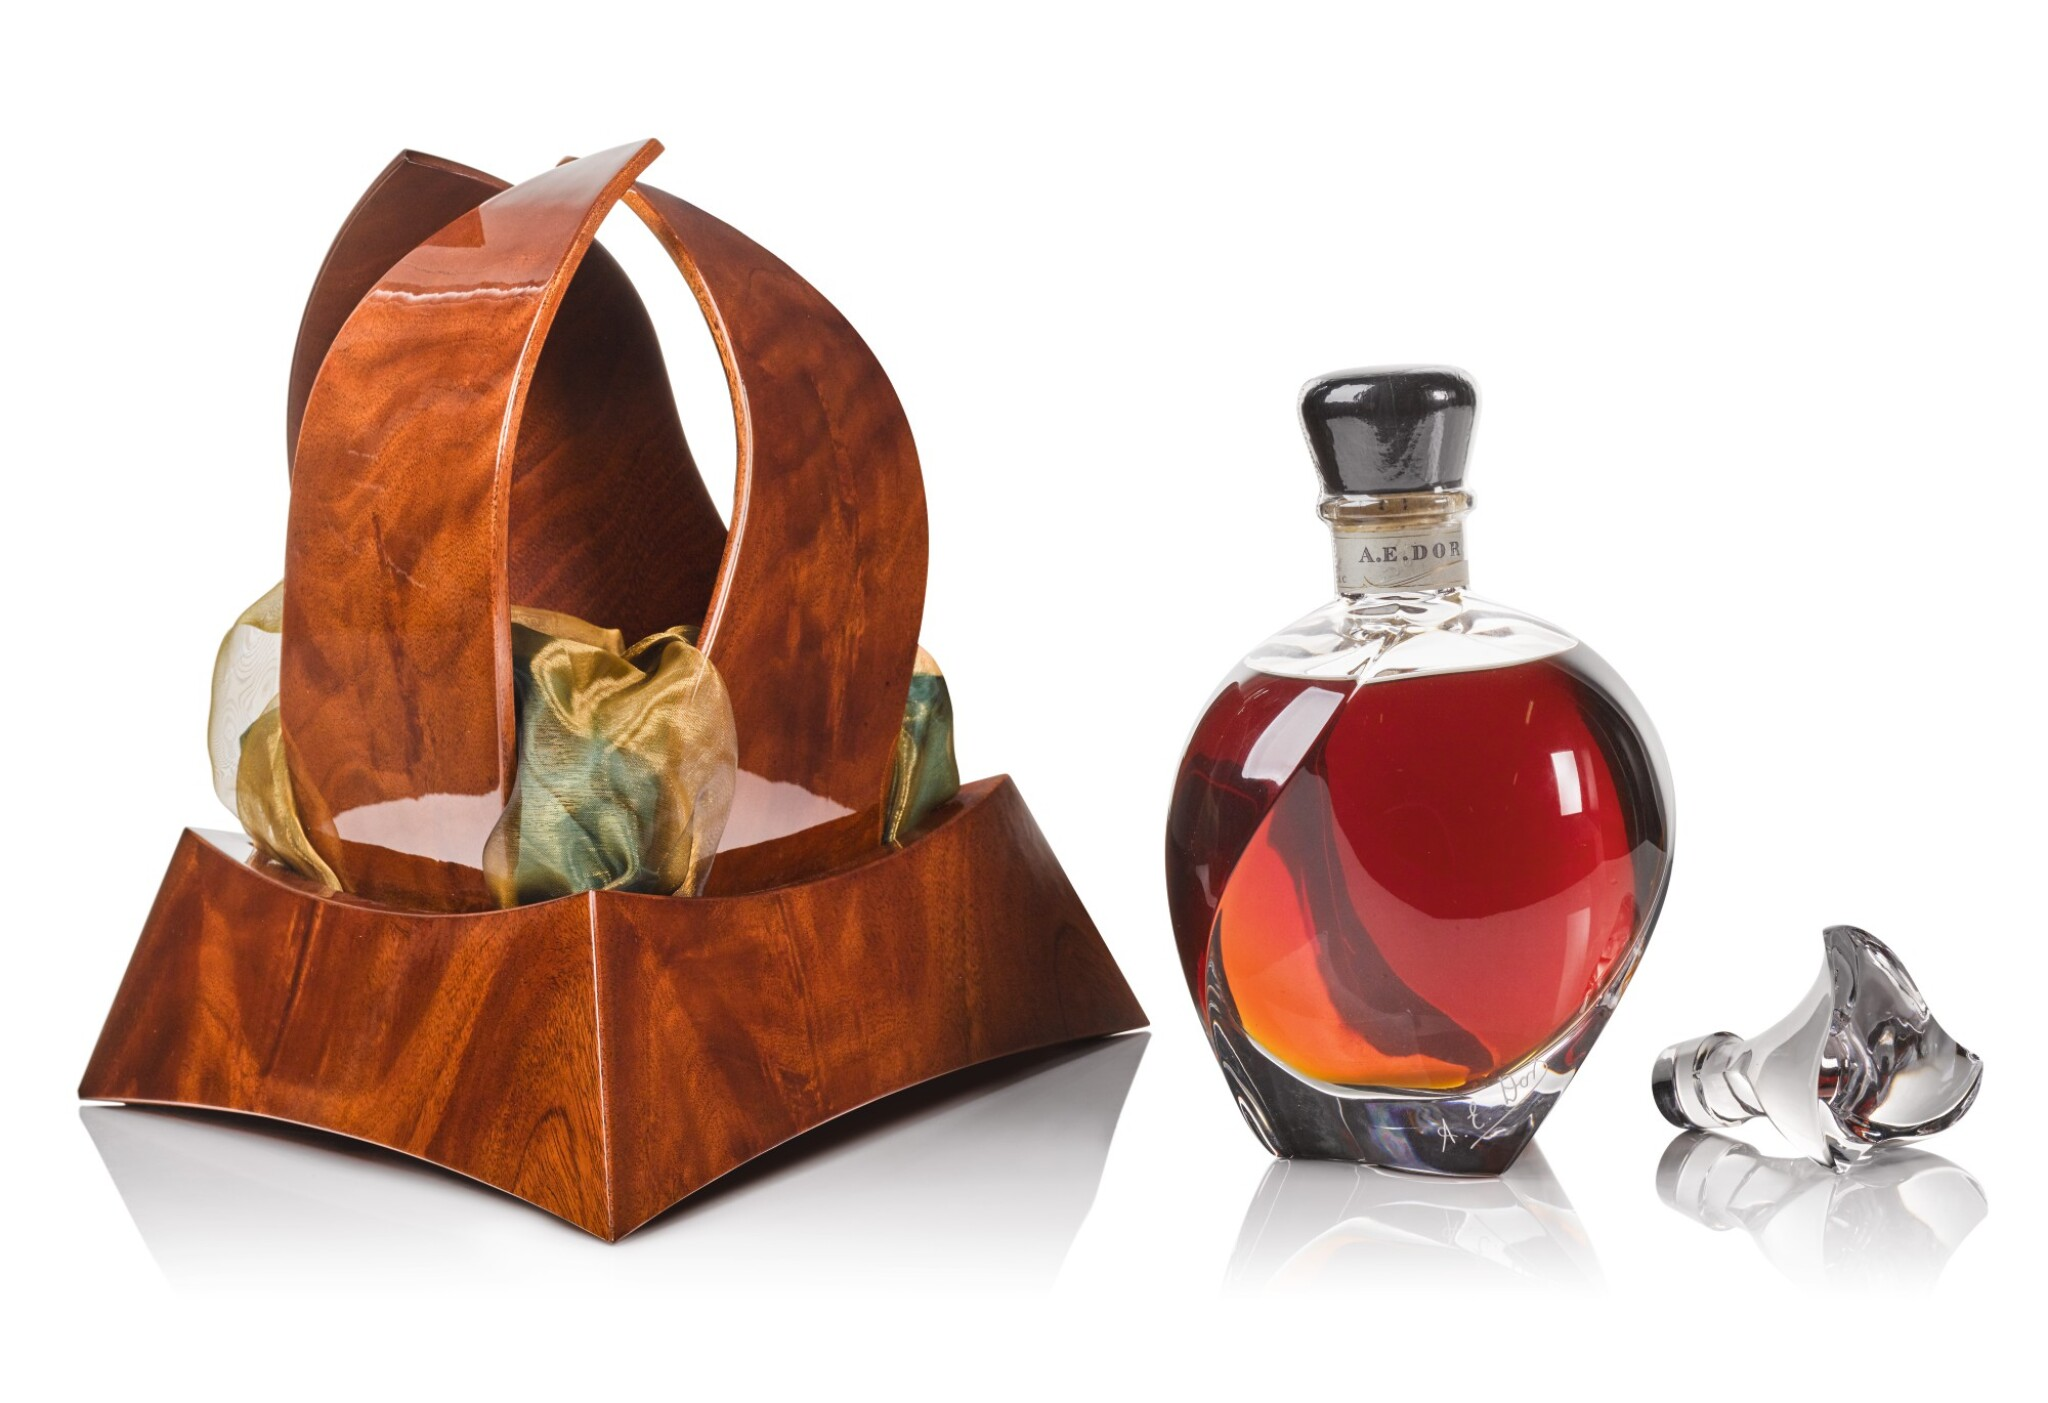 View full screen - View 1 of Lot 125. A.E. D'Or Sign of Time Decanter 40.0 abv NV .